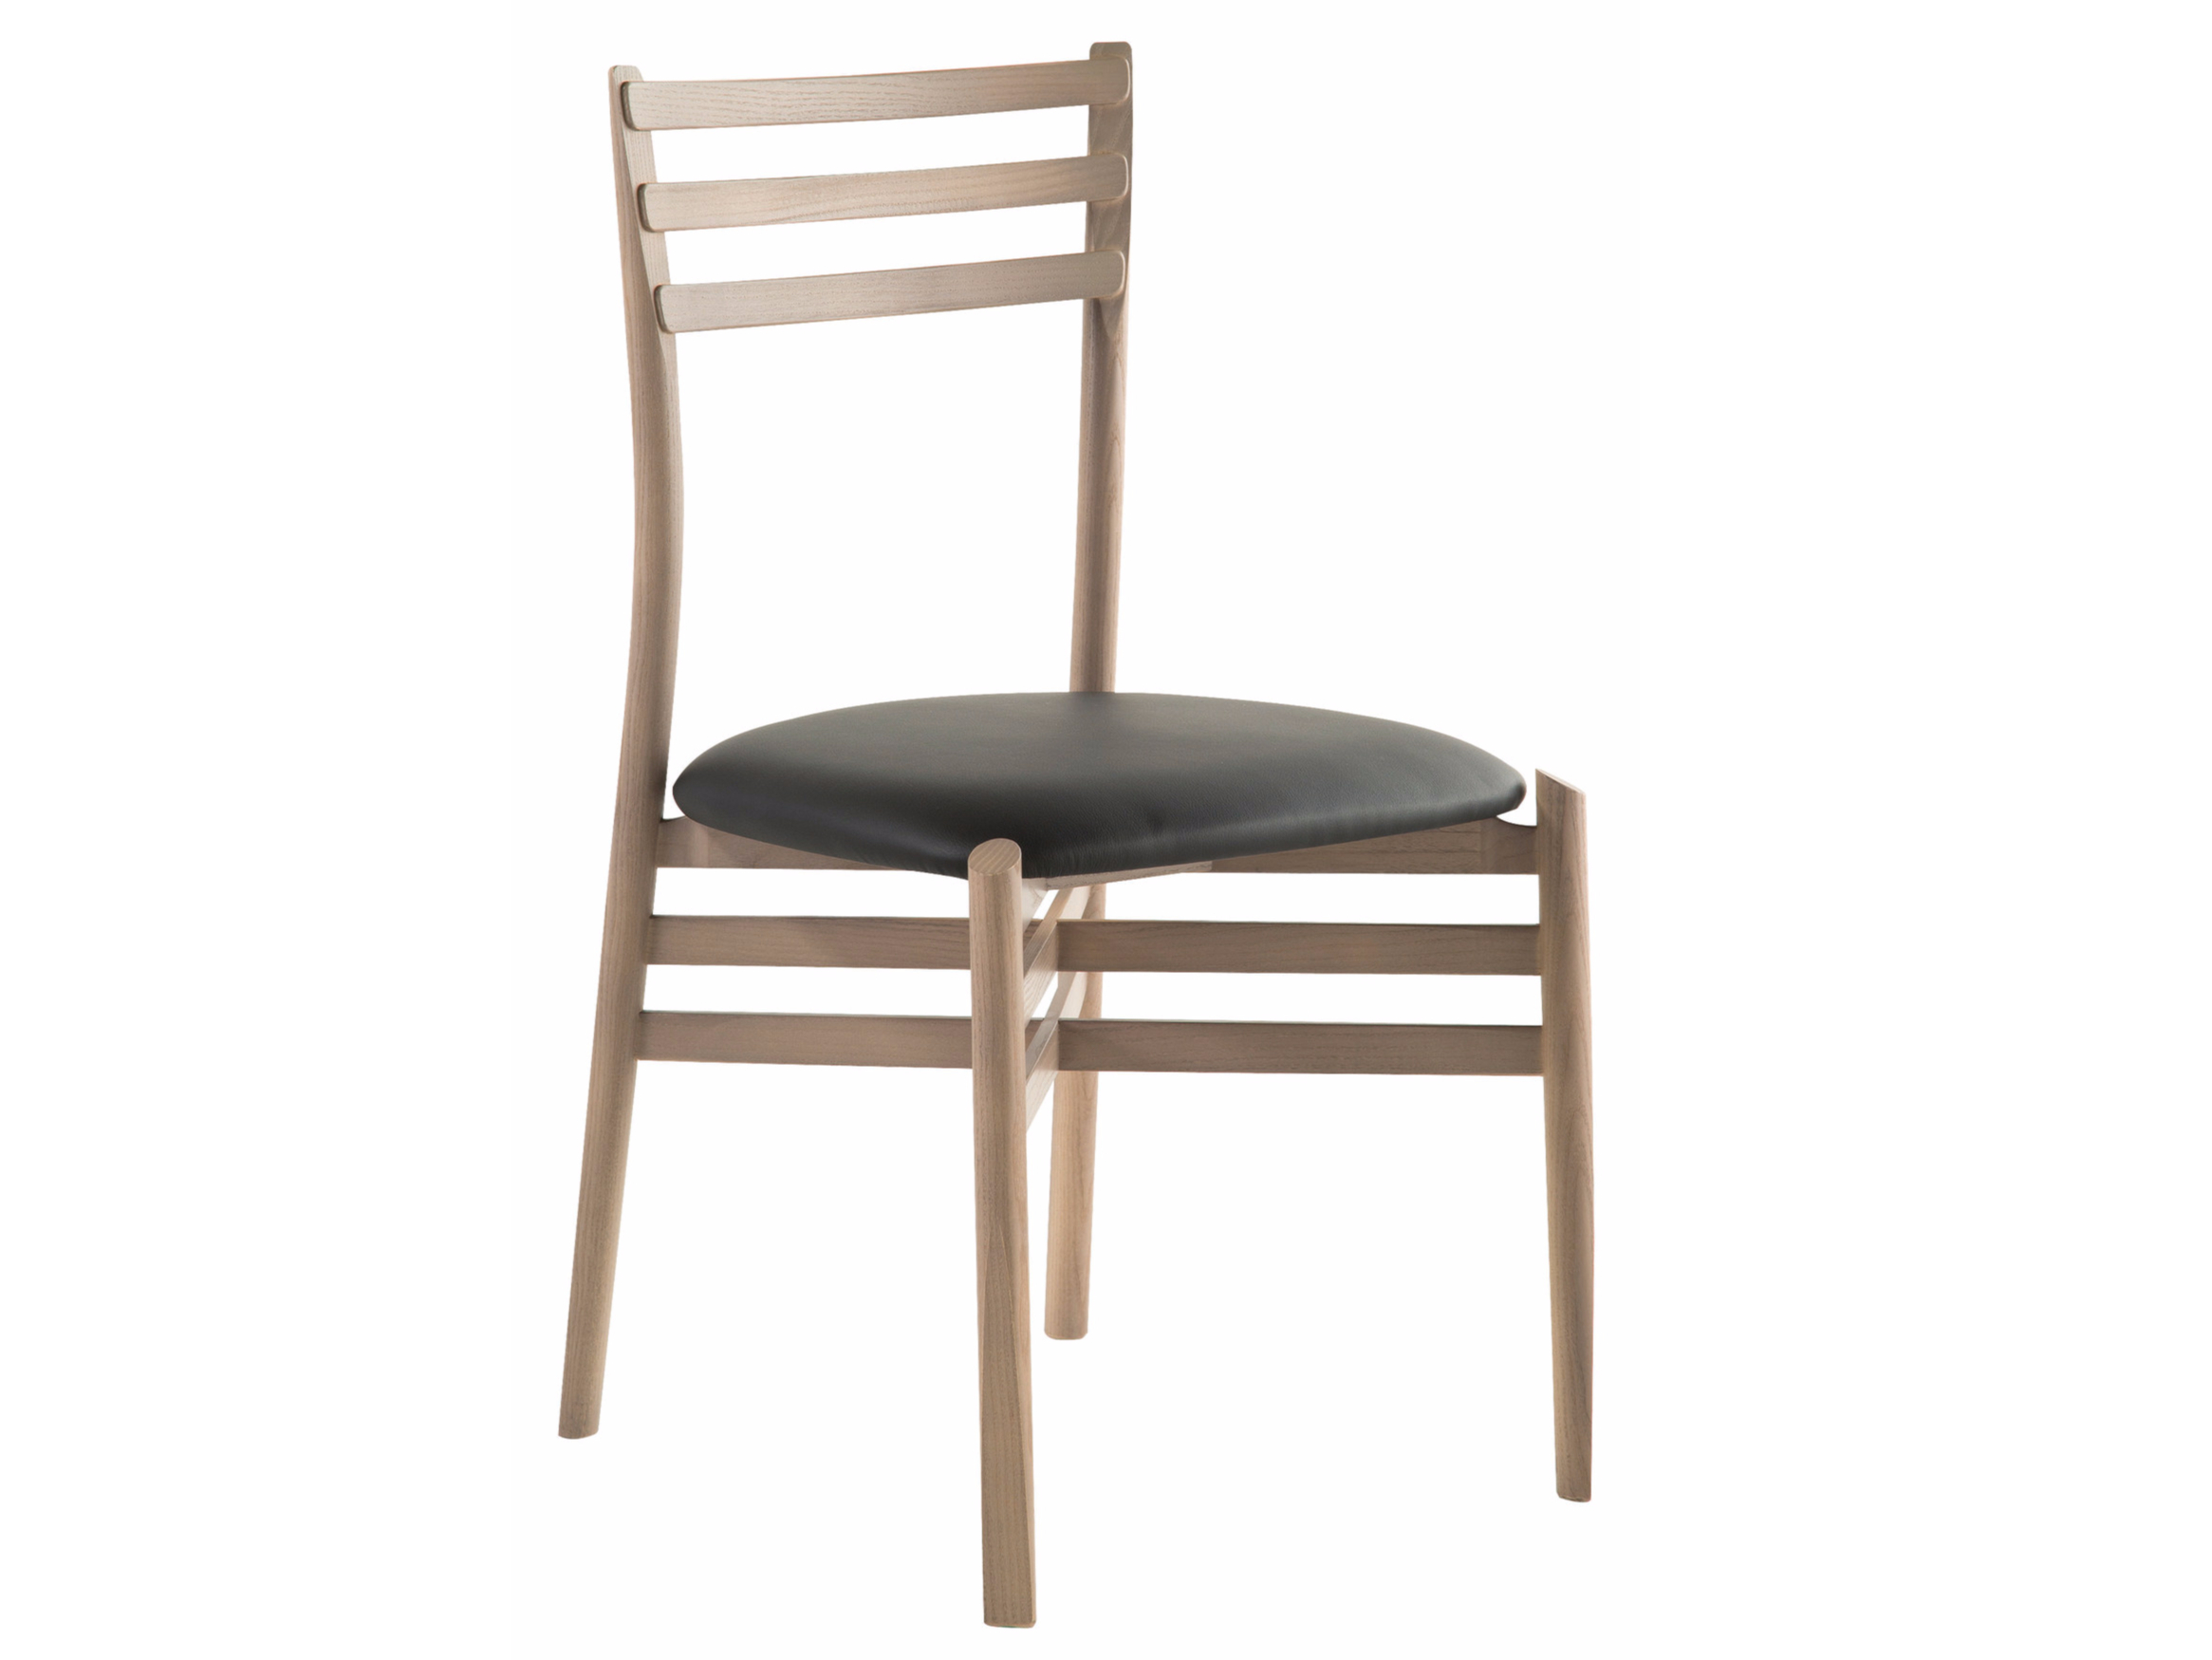 Chaises ROCHE BOBOIS | Archiproducts